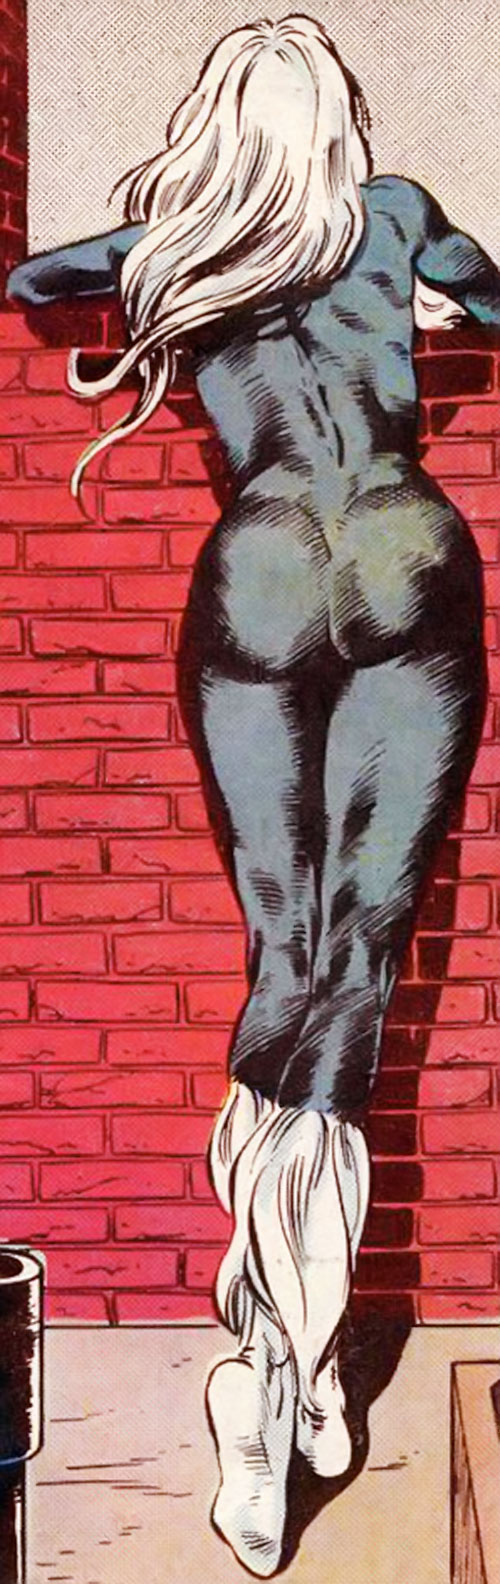 Black Cat (Spider-Man character) (Marvel Comics) rear view